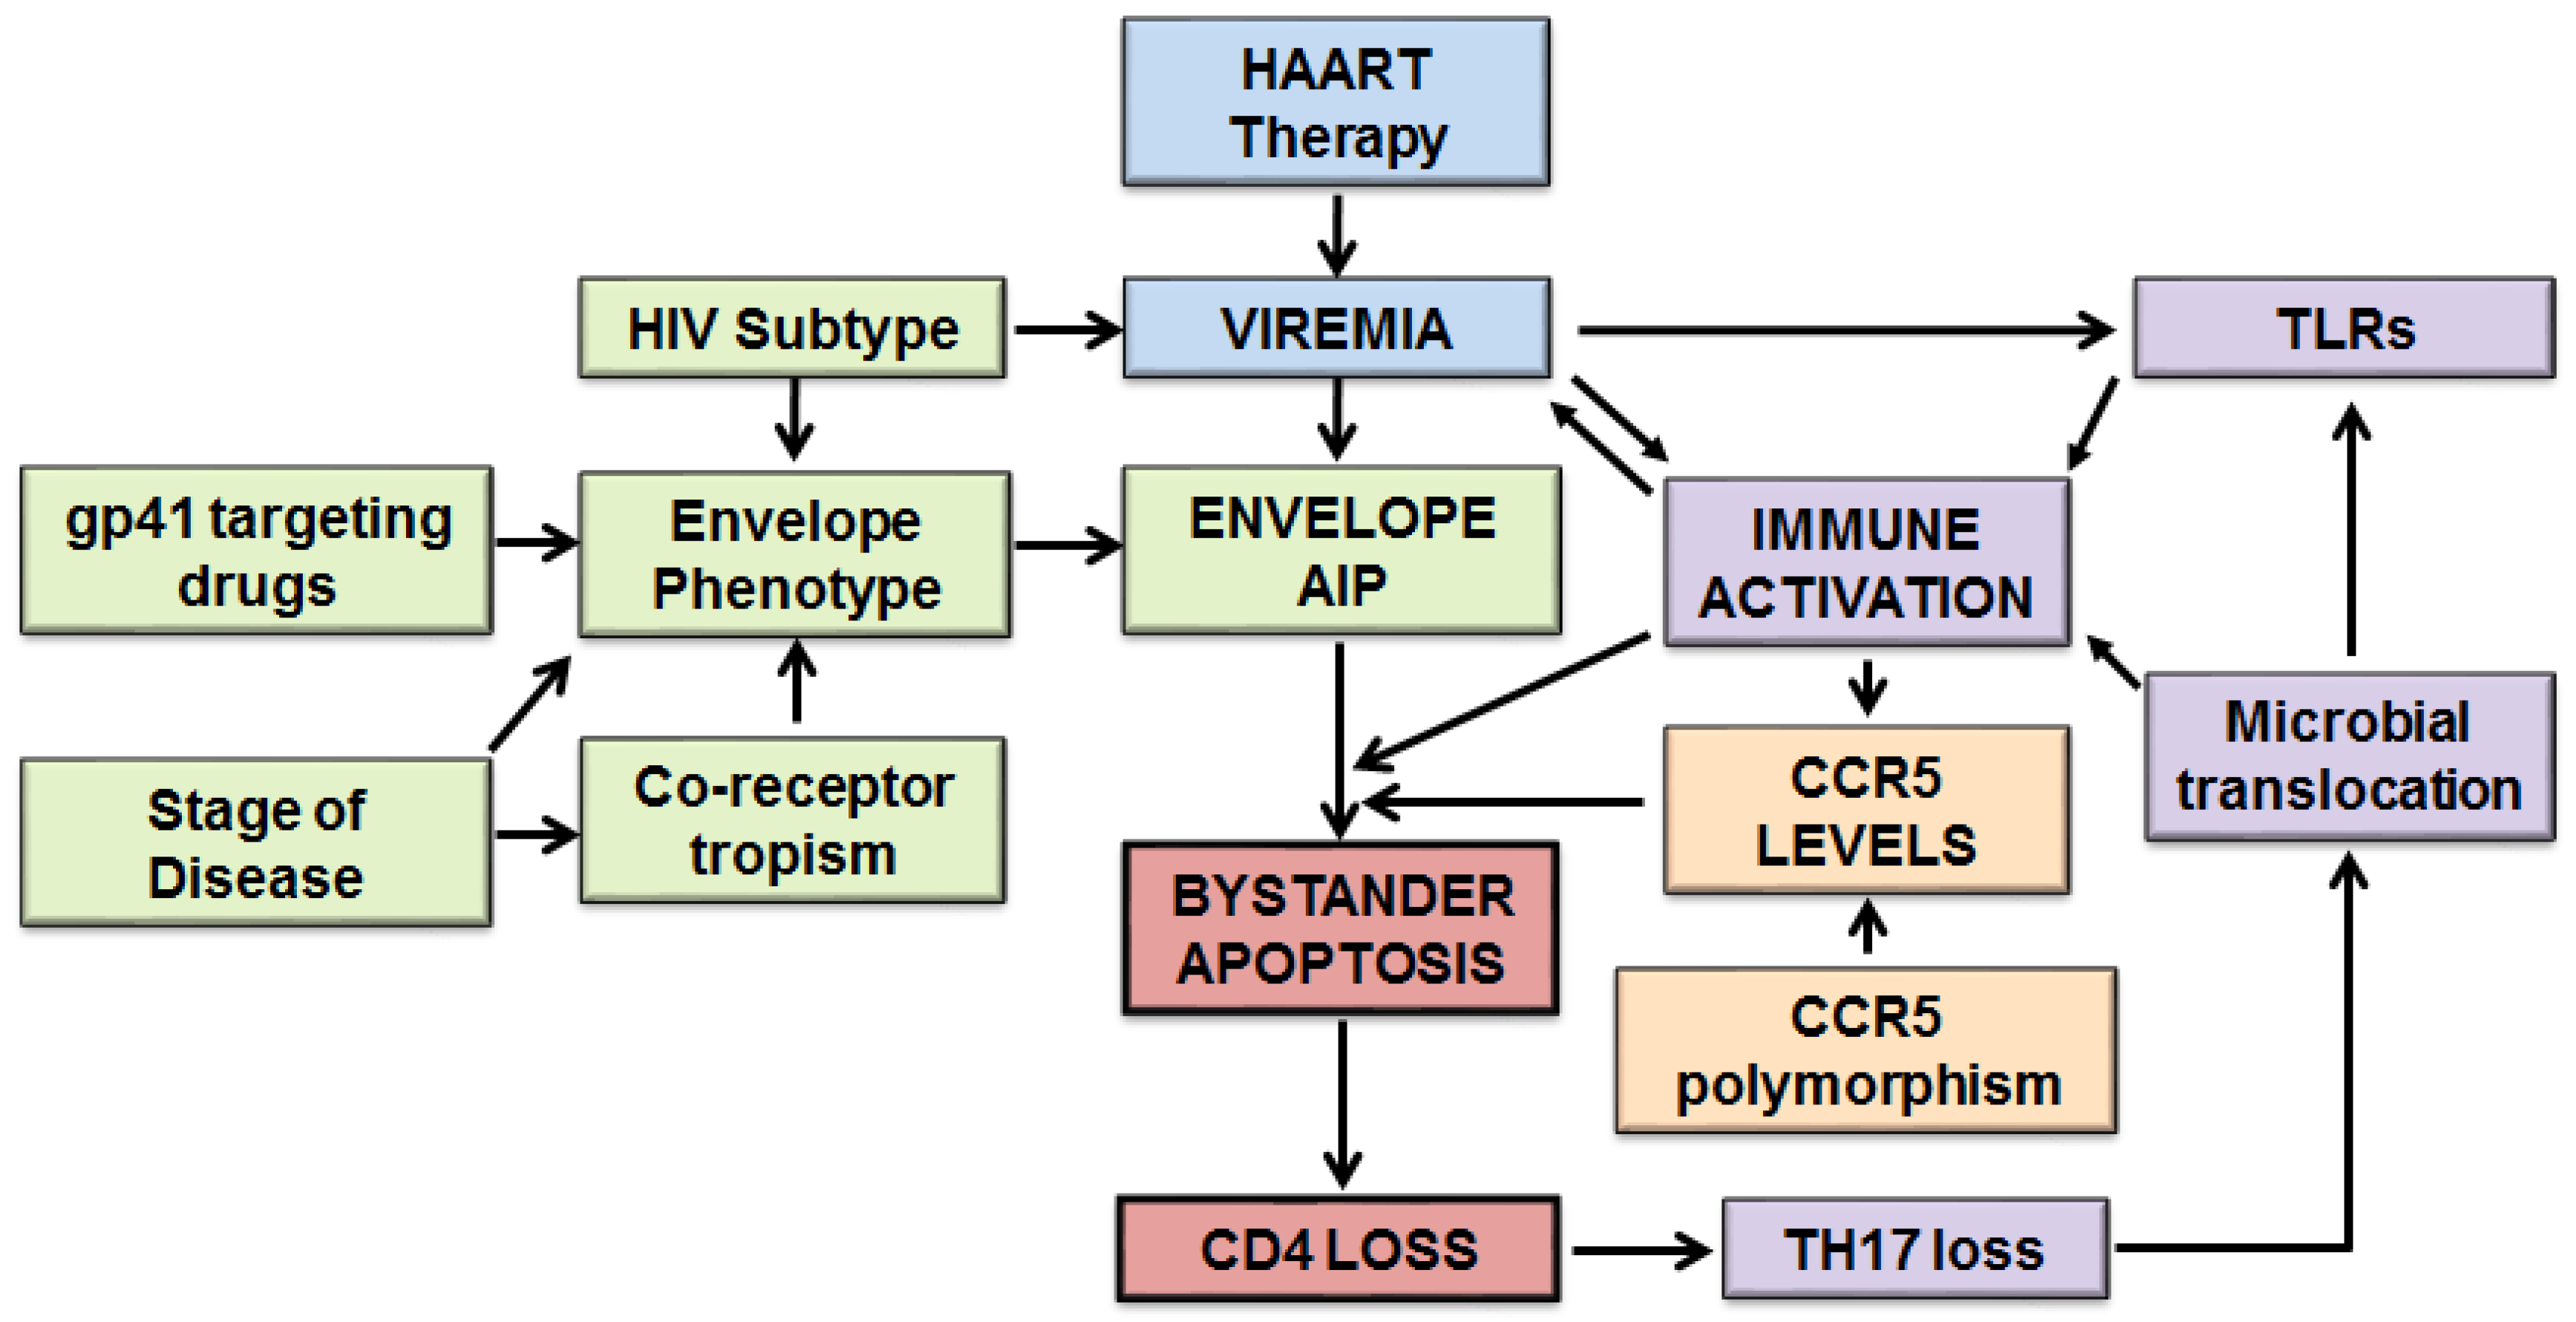 Viruses Free Full Text Host And Viral Factors In Hiv Mediated 1911assemblydiagram Bypassing The Series 80 Safety Components On 09 00237 G001